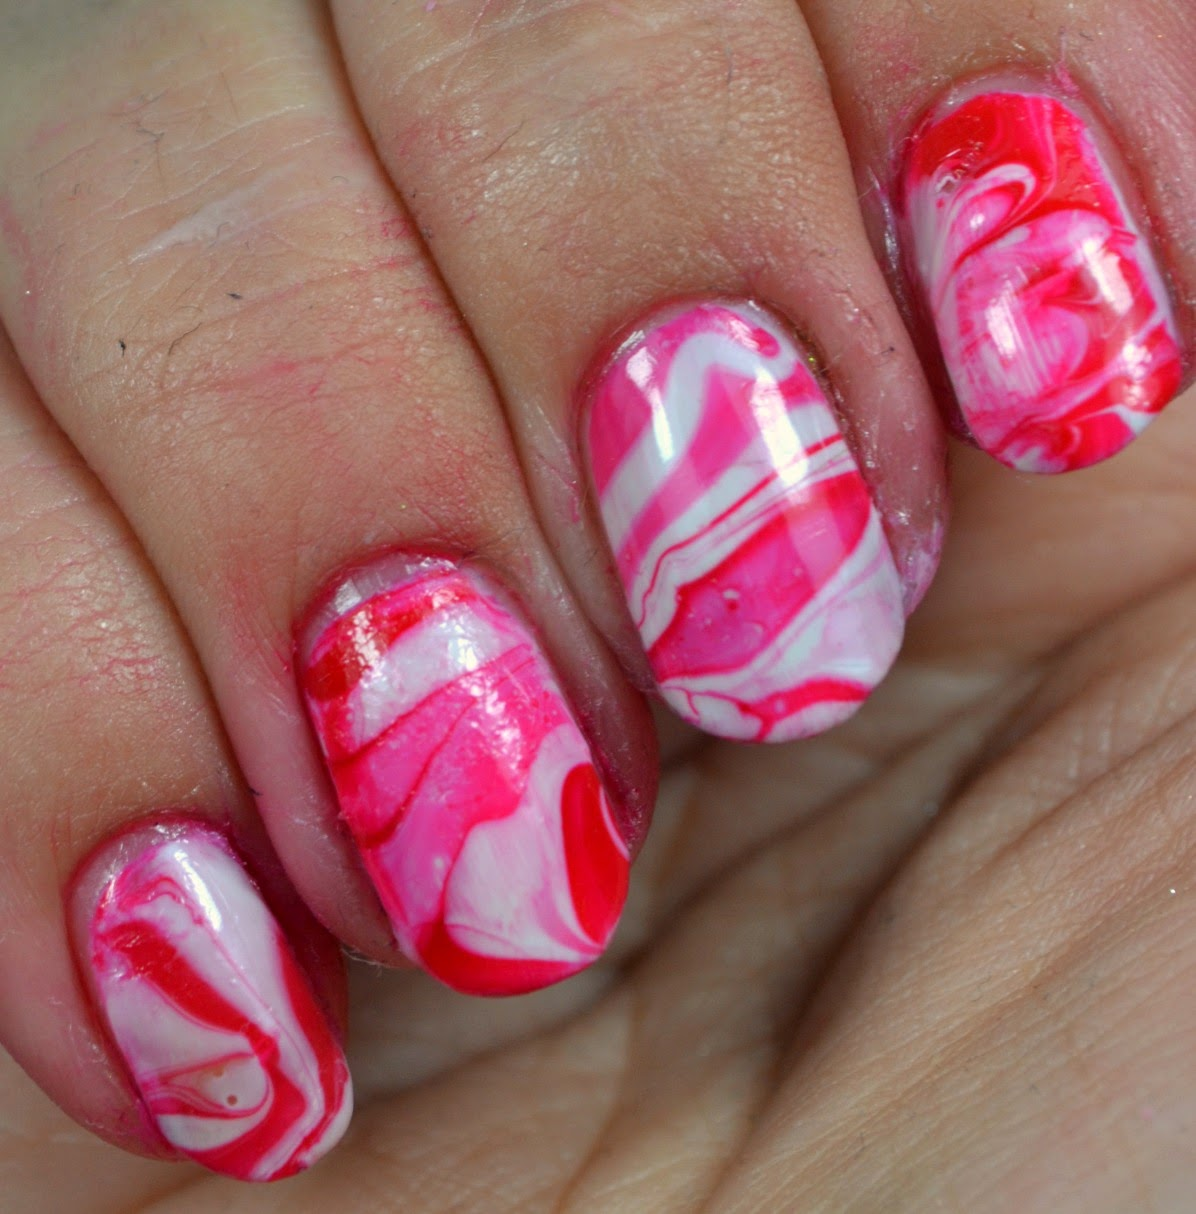 Beauty with a twist it started with hello i couldnt help being inspired and coming up with some super sweet nail art i decided to go with some water marbling since strawberry cheesecake usually solutioingenieria Images